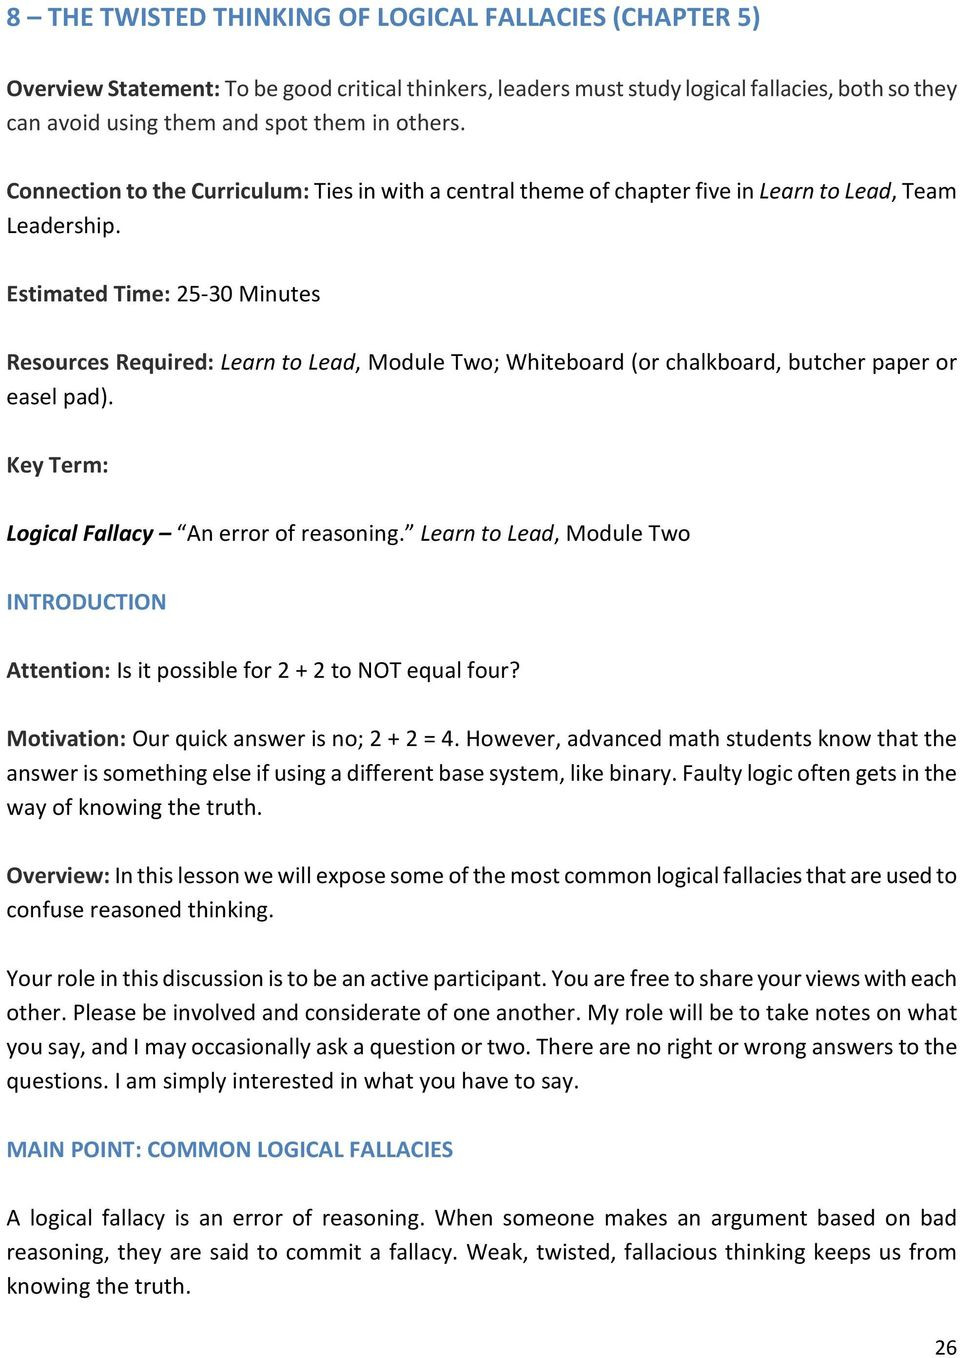 Logical Fallacies Worksheet High School 8 the Twisted Thinking Of Logical Fallacies Chapter 5